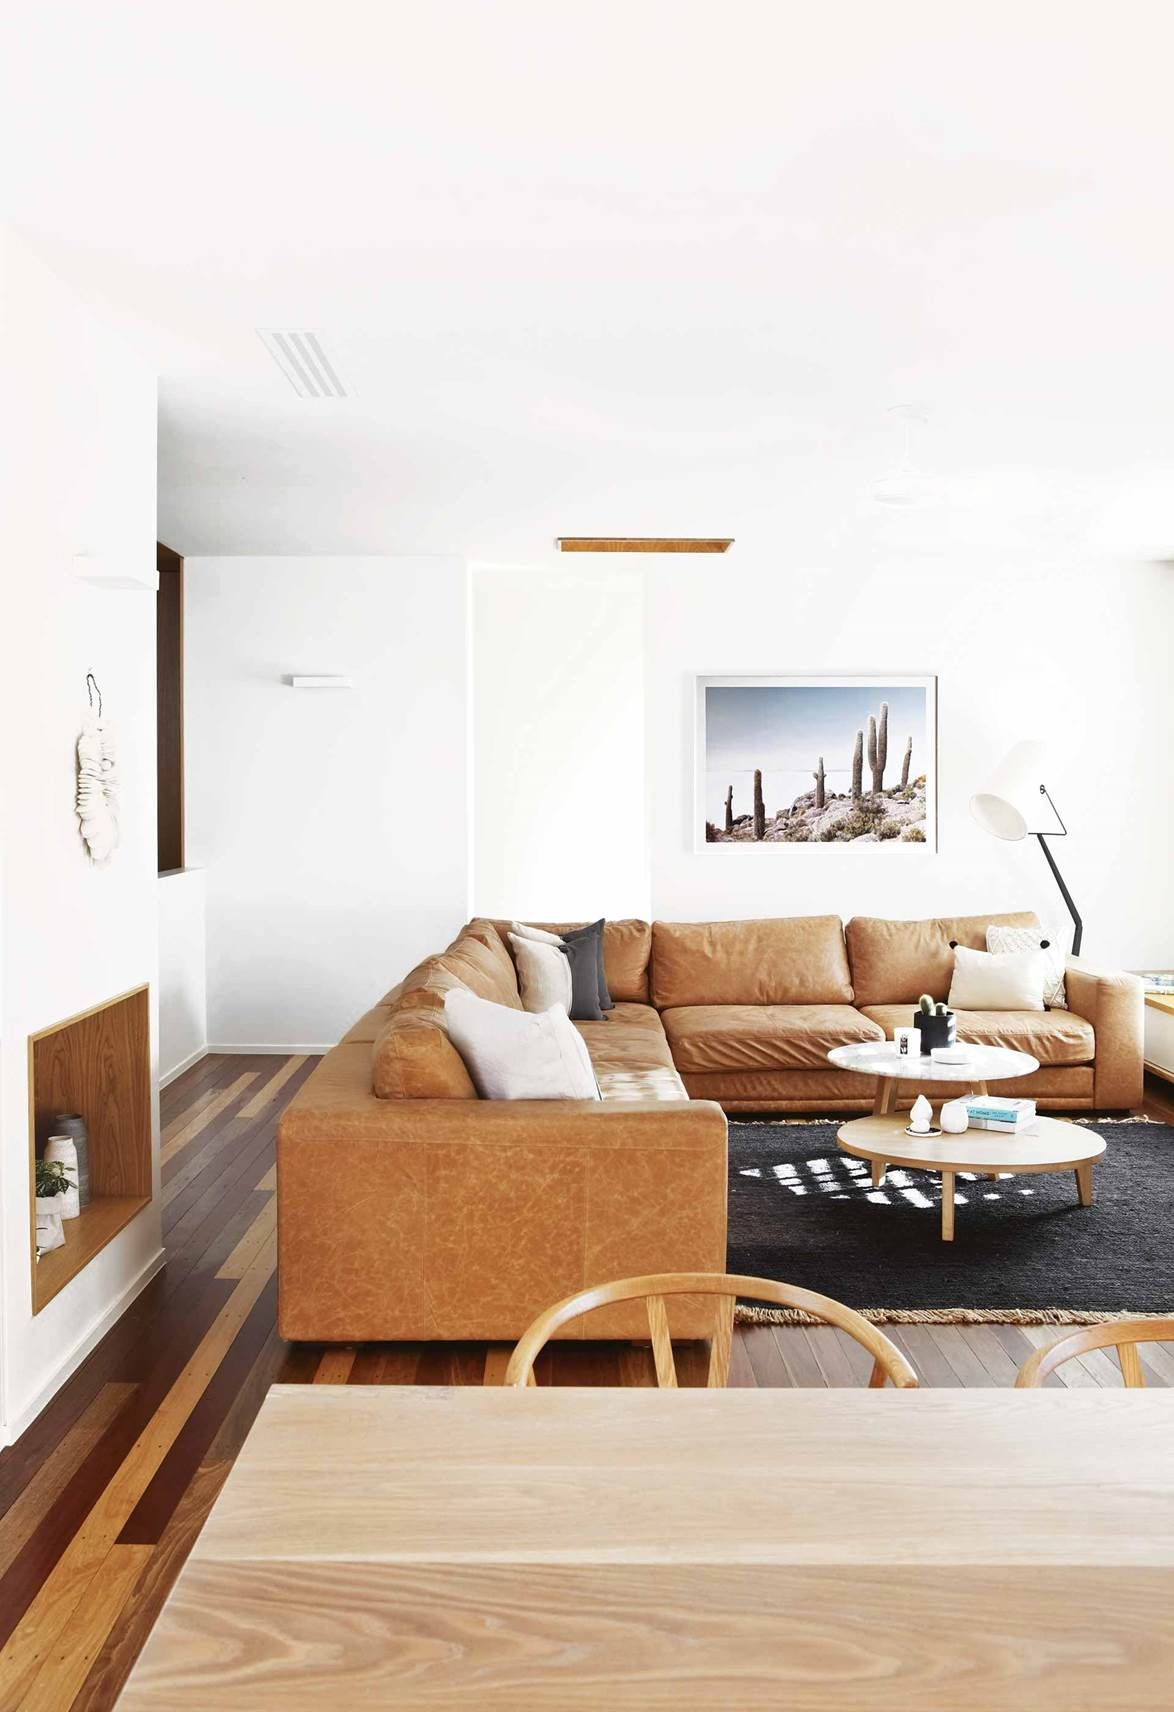 A Beach House In Noosa Was Given A Family Friendly Renovation Living Room Decor Rustic Home Decor Rustic Chic Living Room